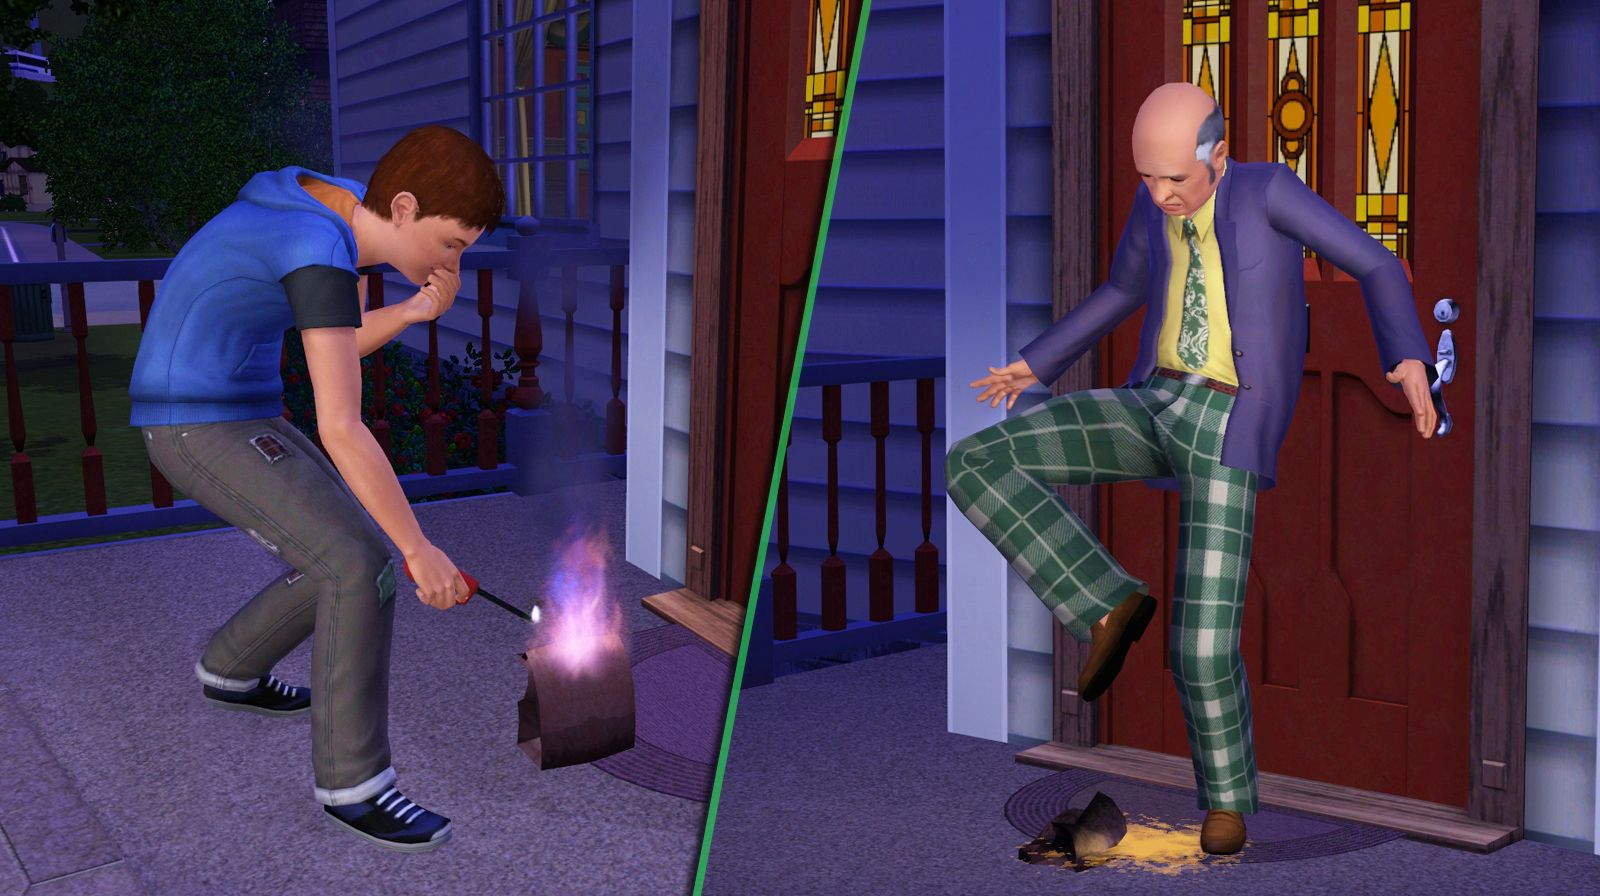 sims 2 TAGS: Y3DF, Incest, Family, mom son, video